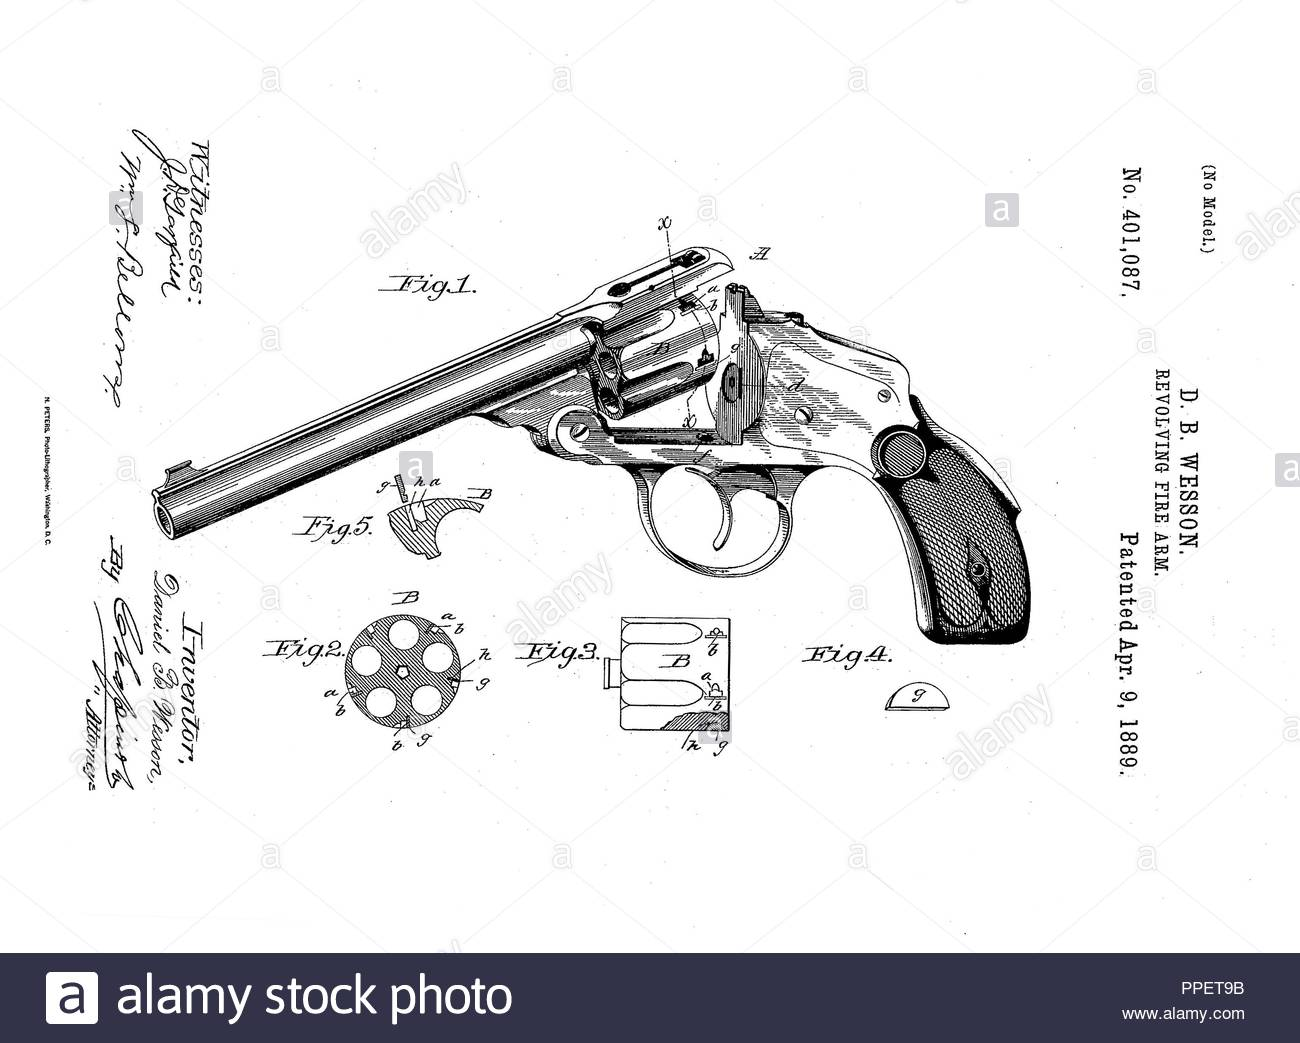 Police revolver cal .38 Smith & Wesson - Stock Image